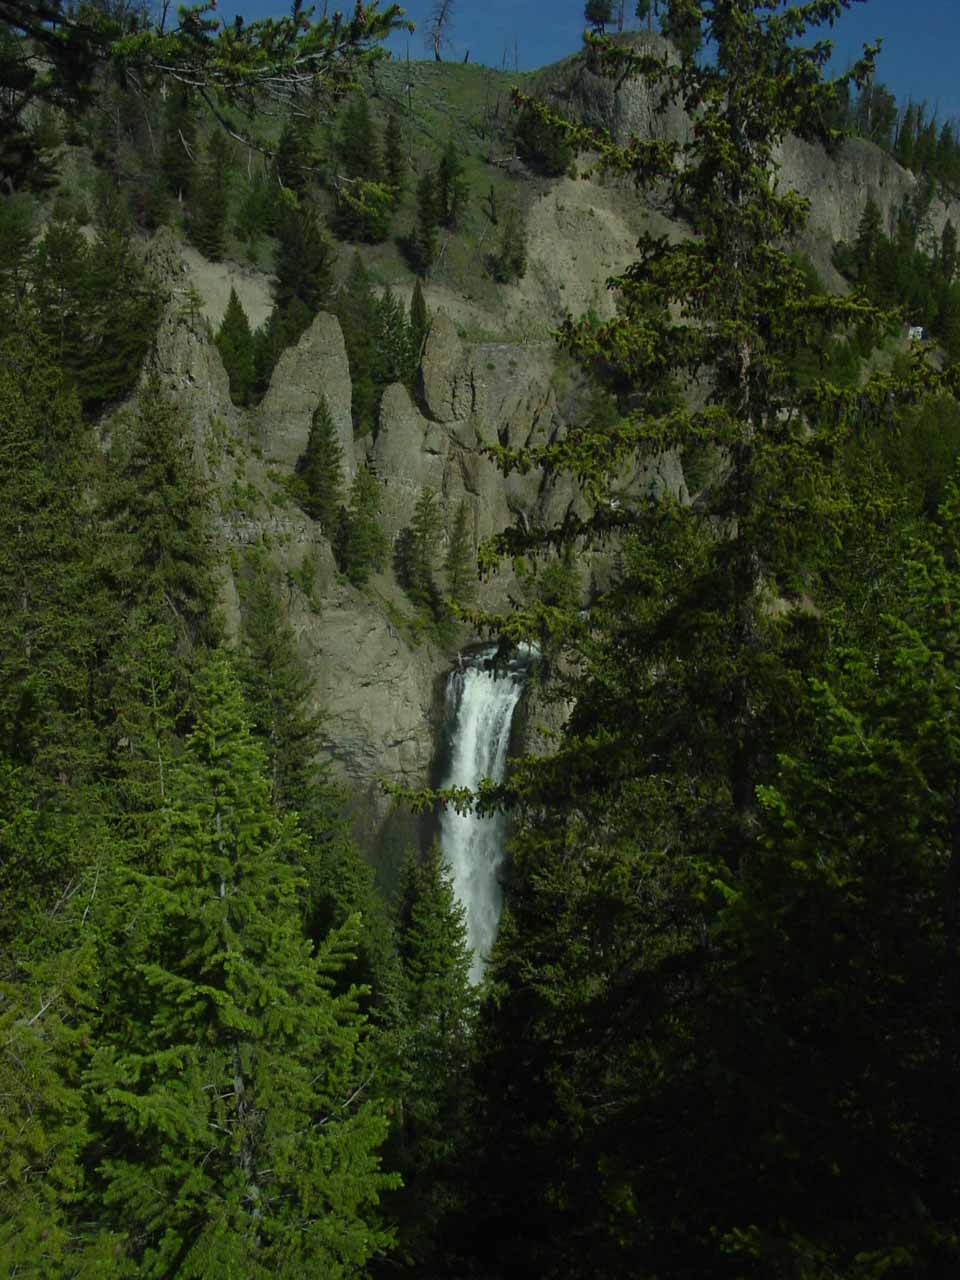 More contextual view of Tower Fall from the upper overlook